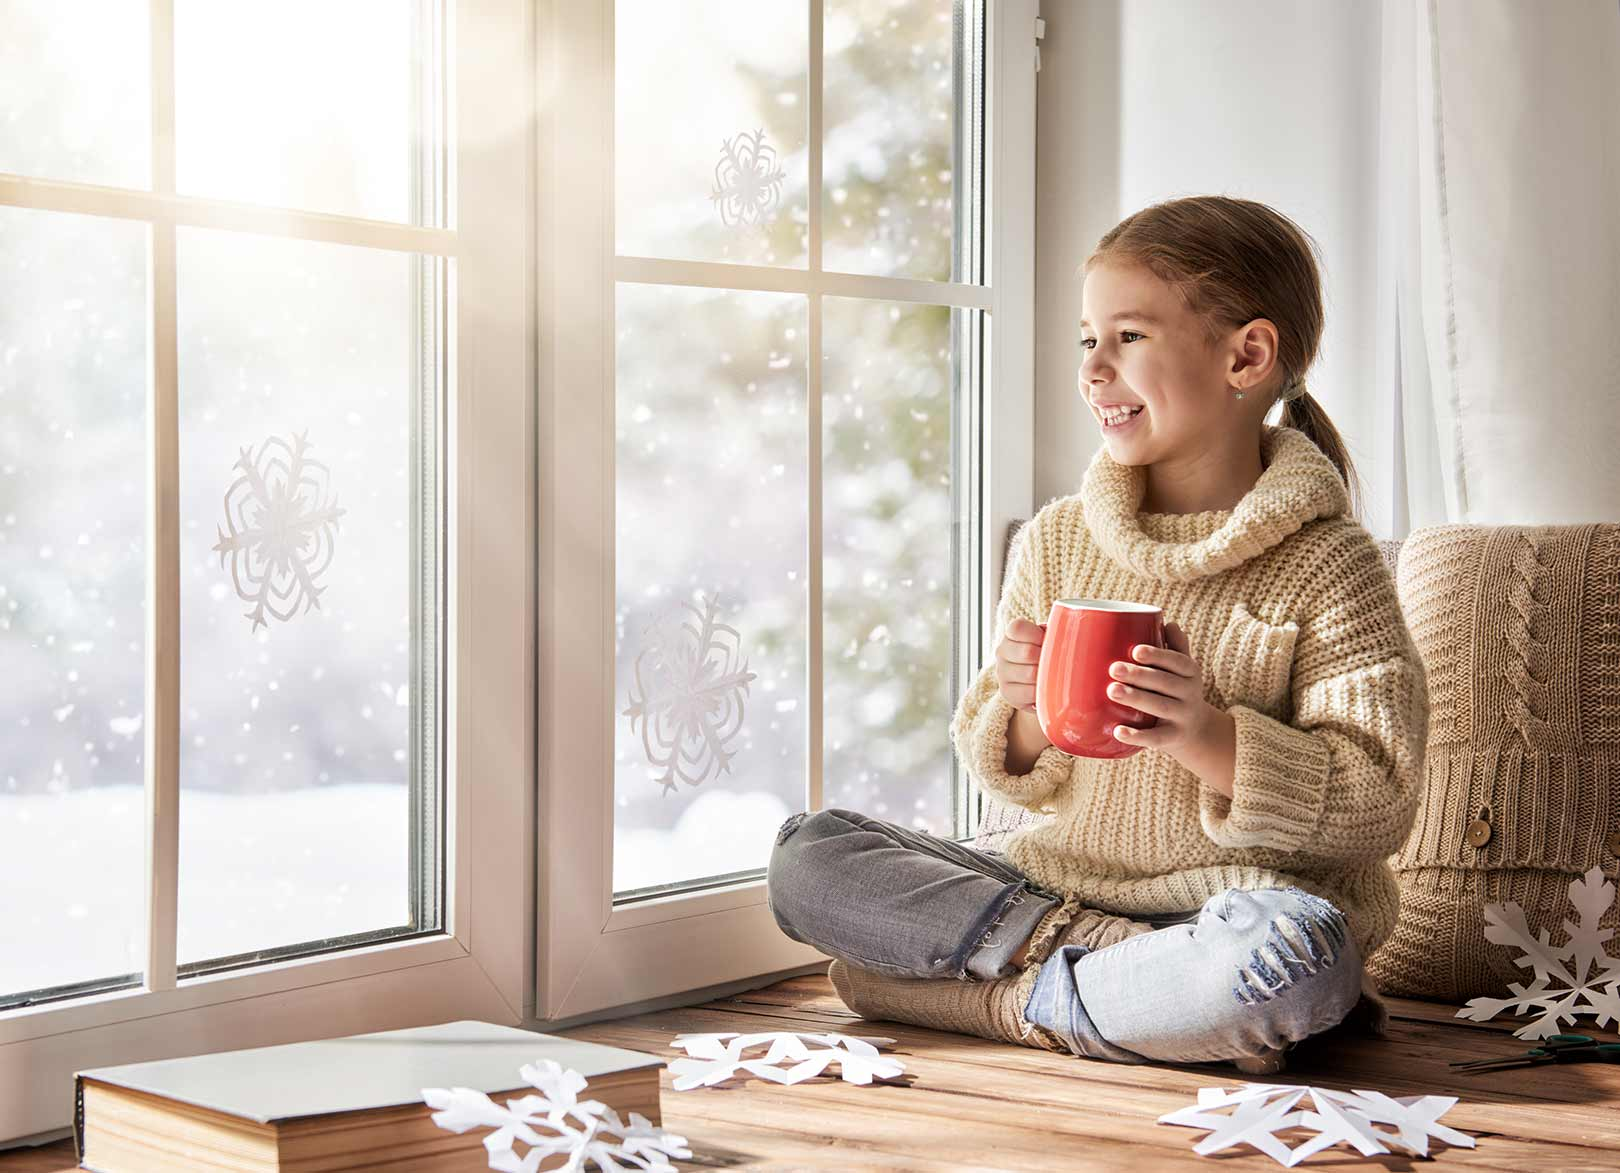 Young girl in beige jumper sat inside, holding mug of hot chocolate watching snowflakes